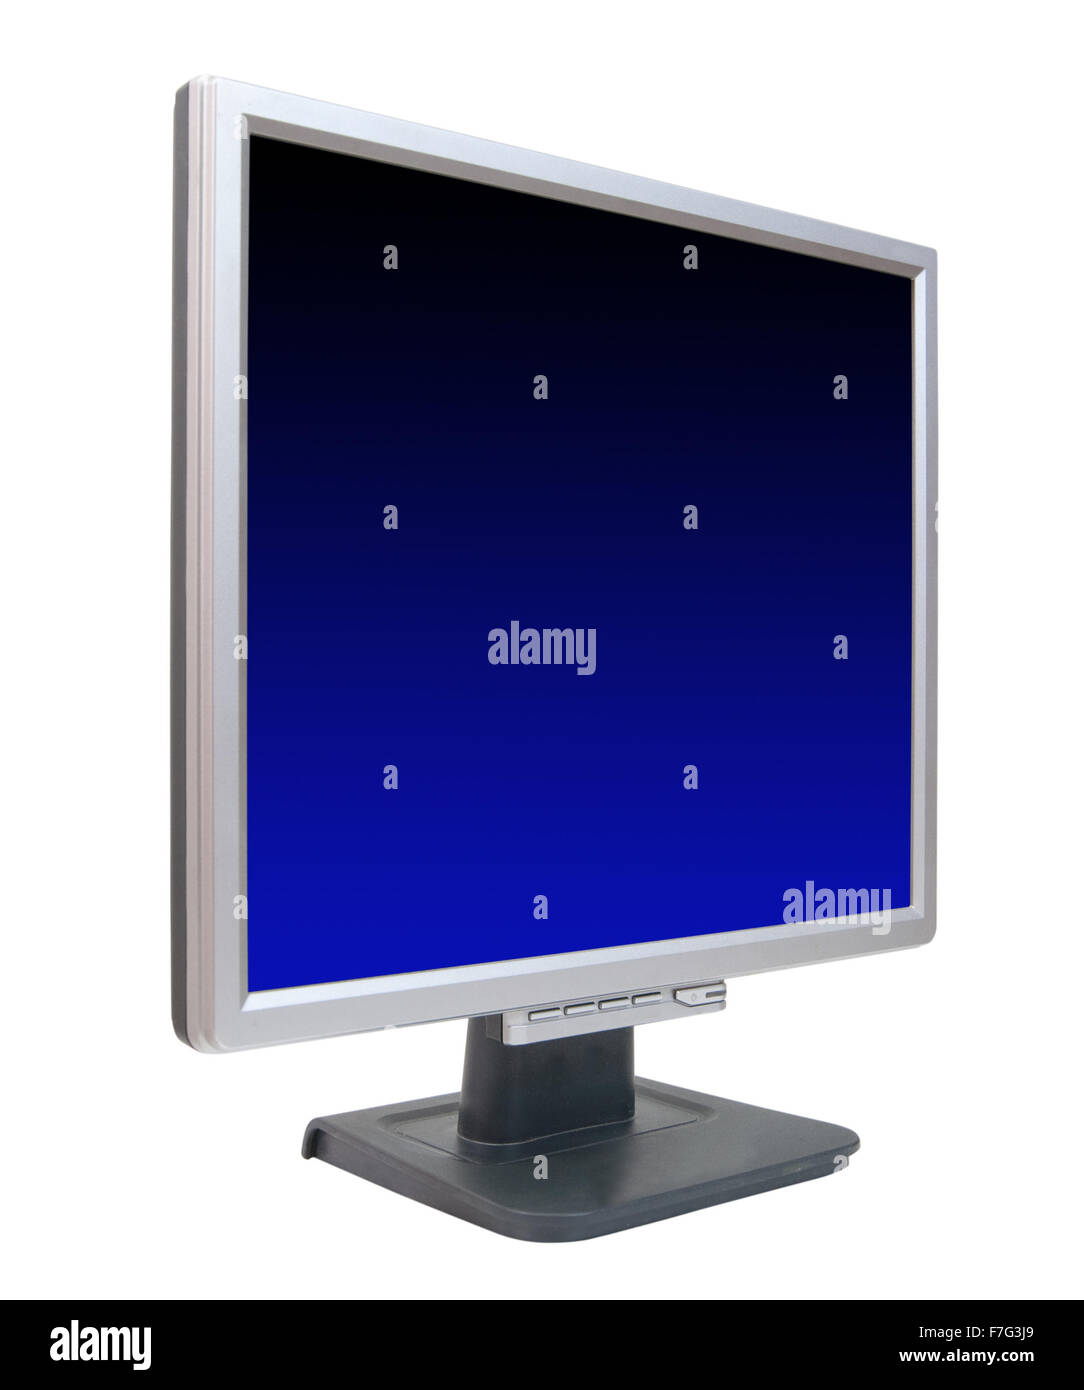 LCD monitor. Isolated on white background with clipping path - Stock Image